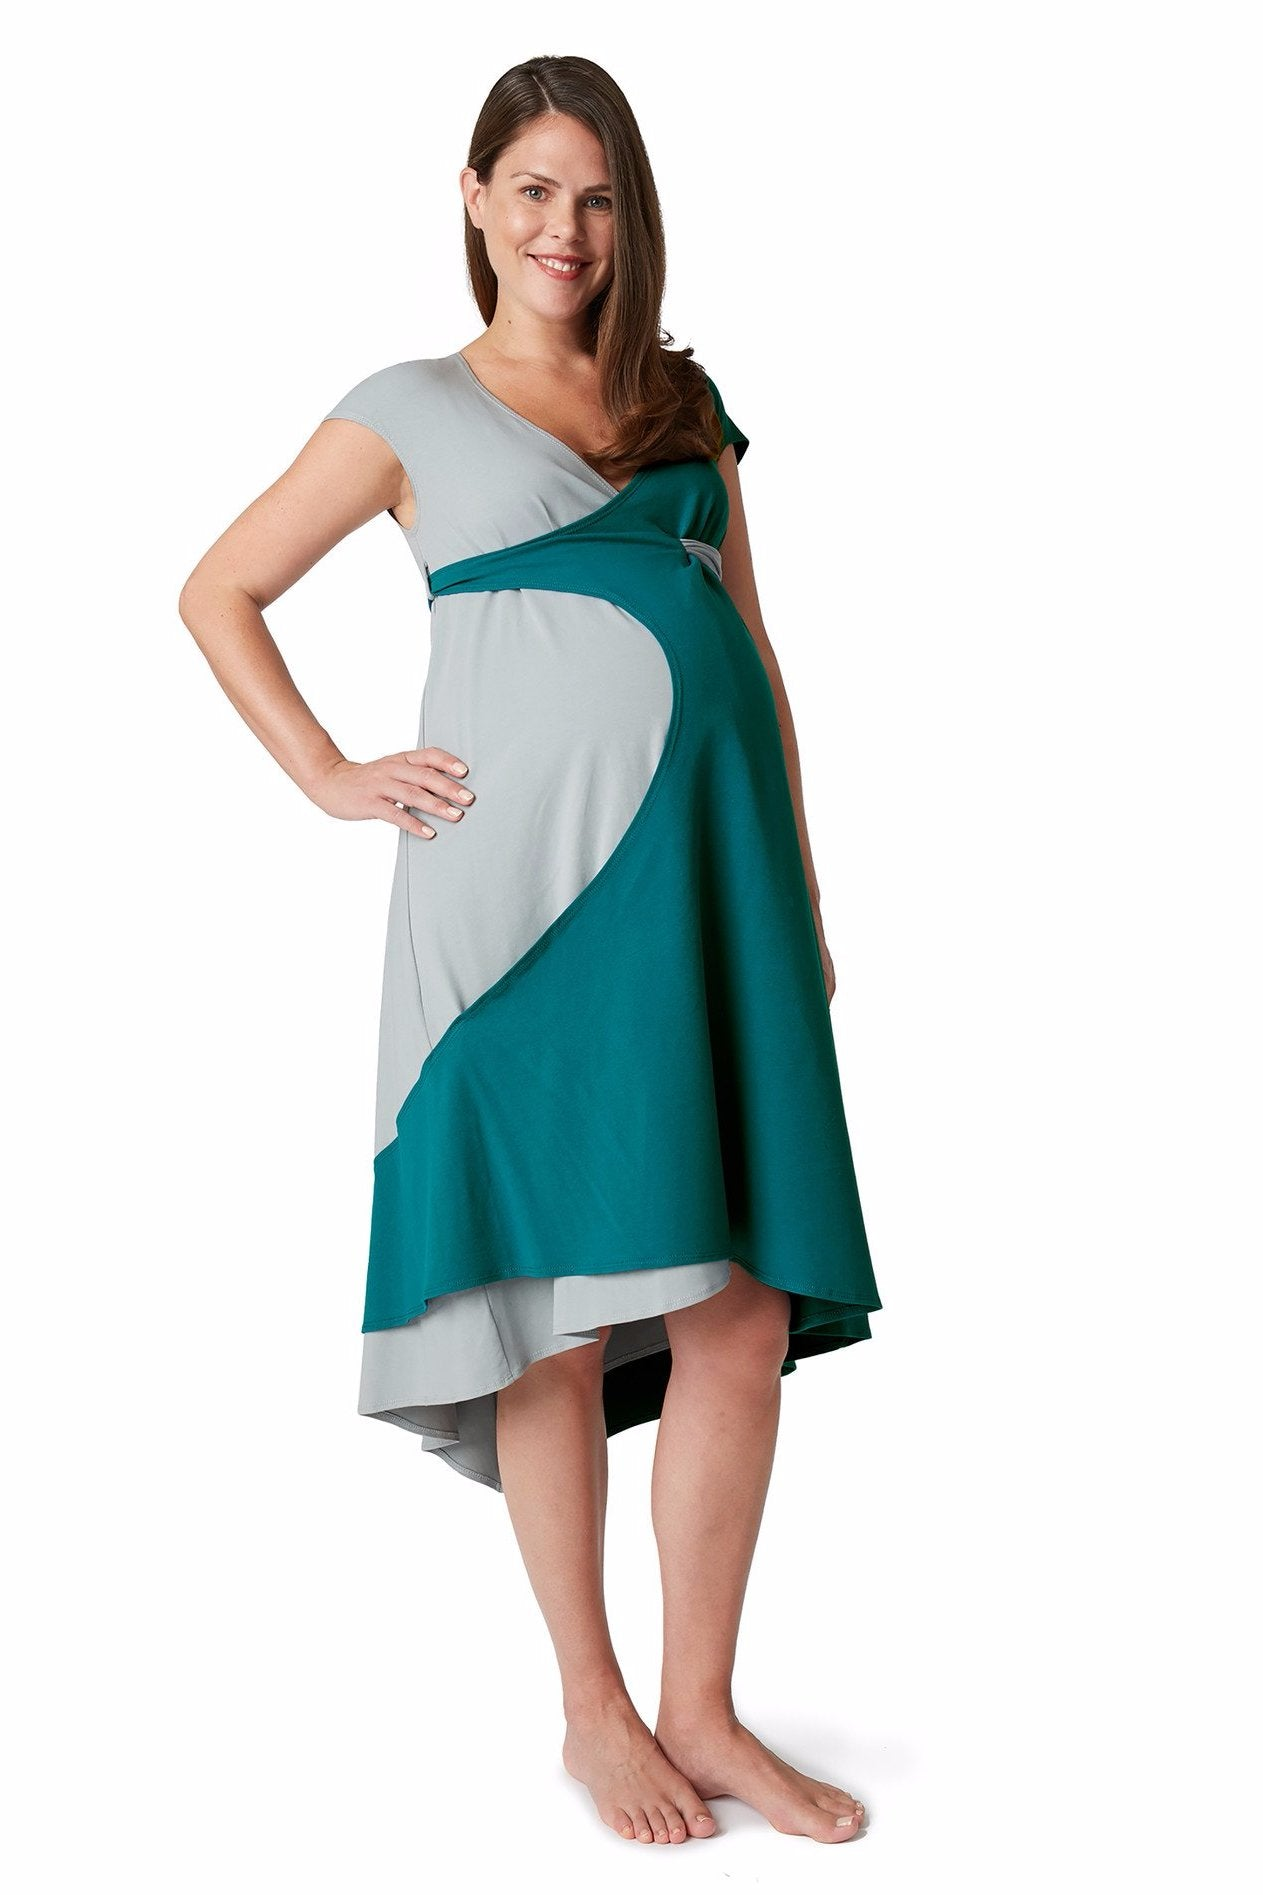 Transition Gowns | Best Baby Shower Gifts for Moms – Pretty Pushers